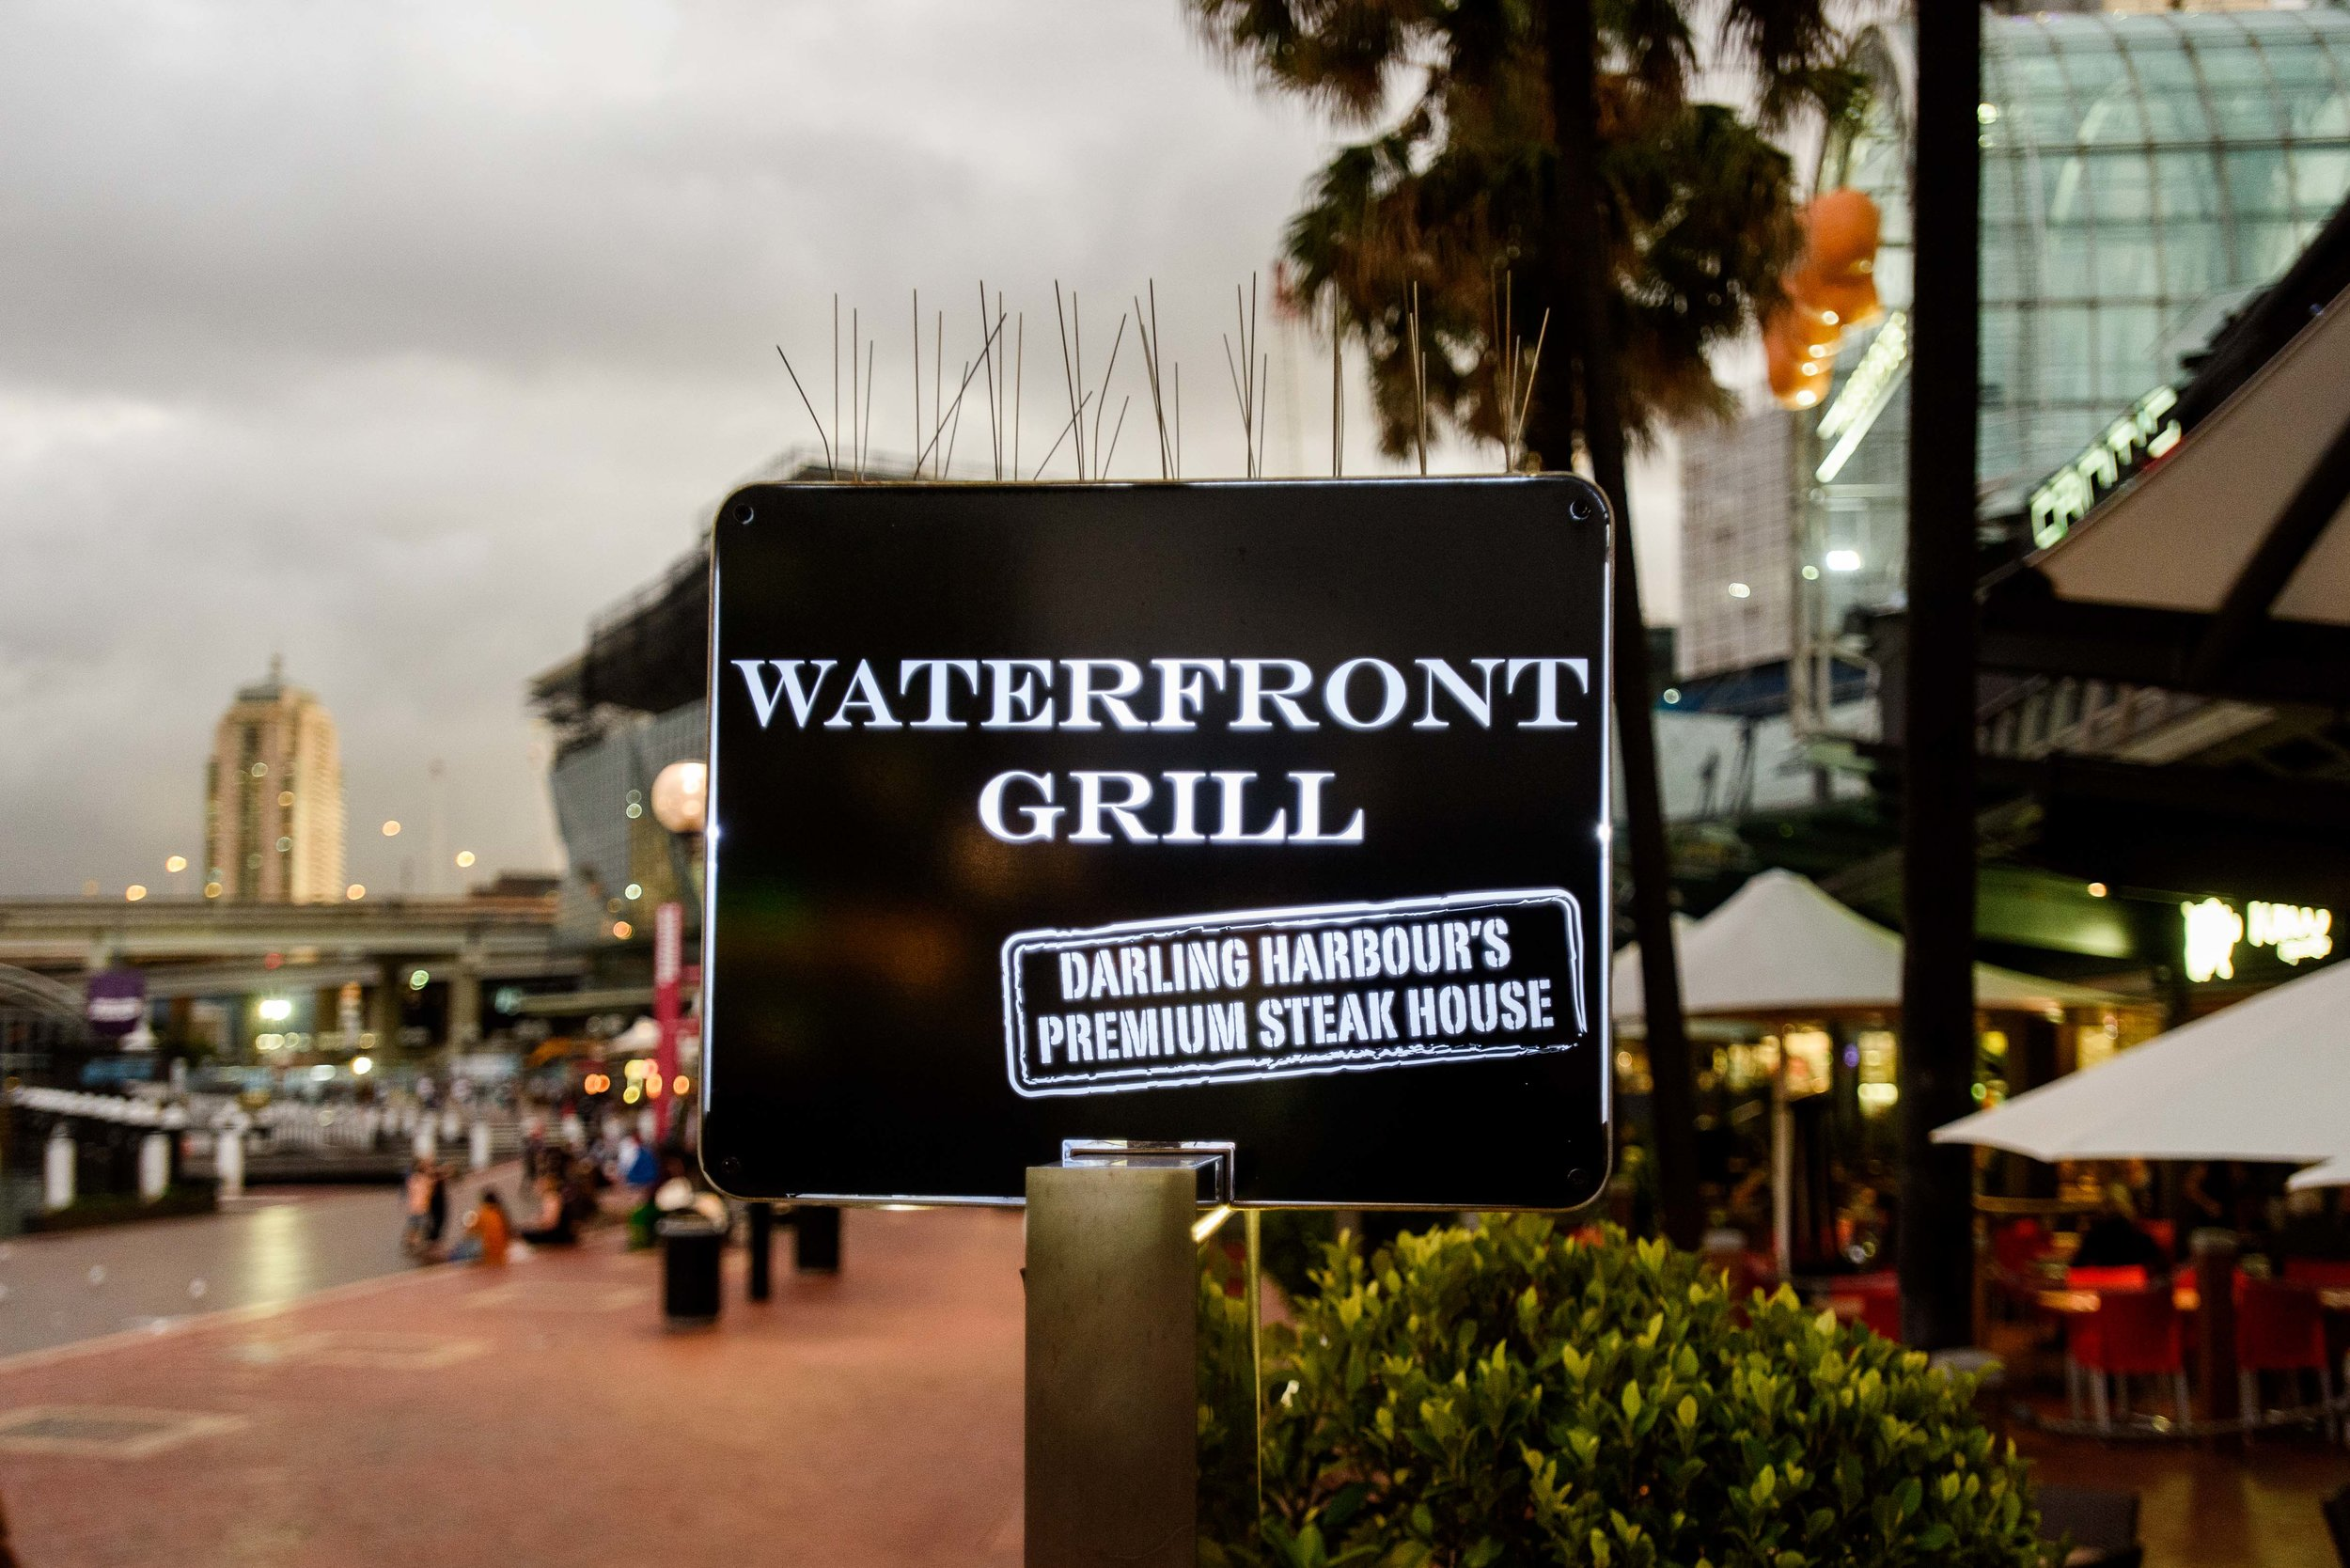 Waterfront-Grill-Gallery-10.jpg